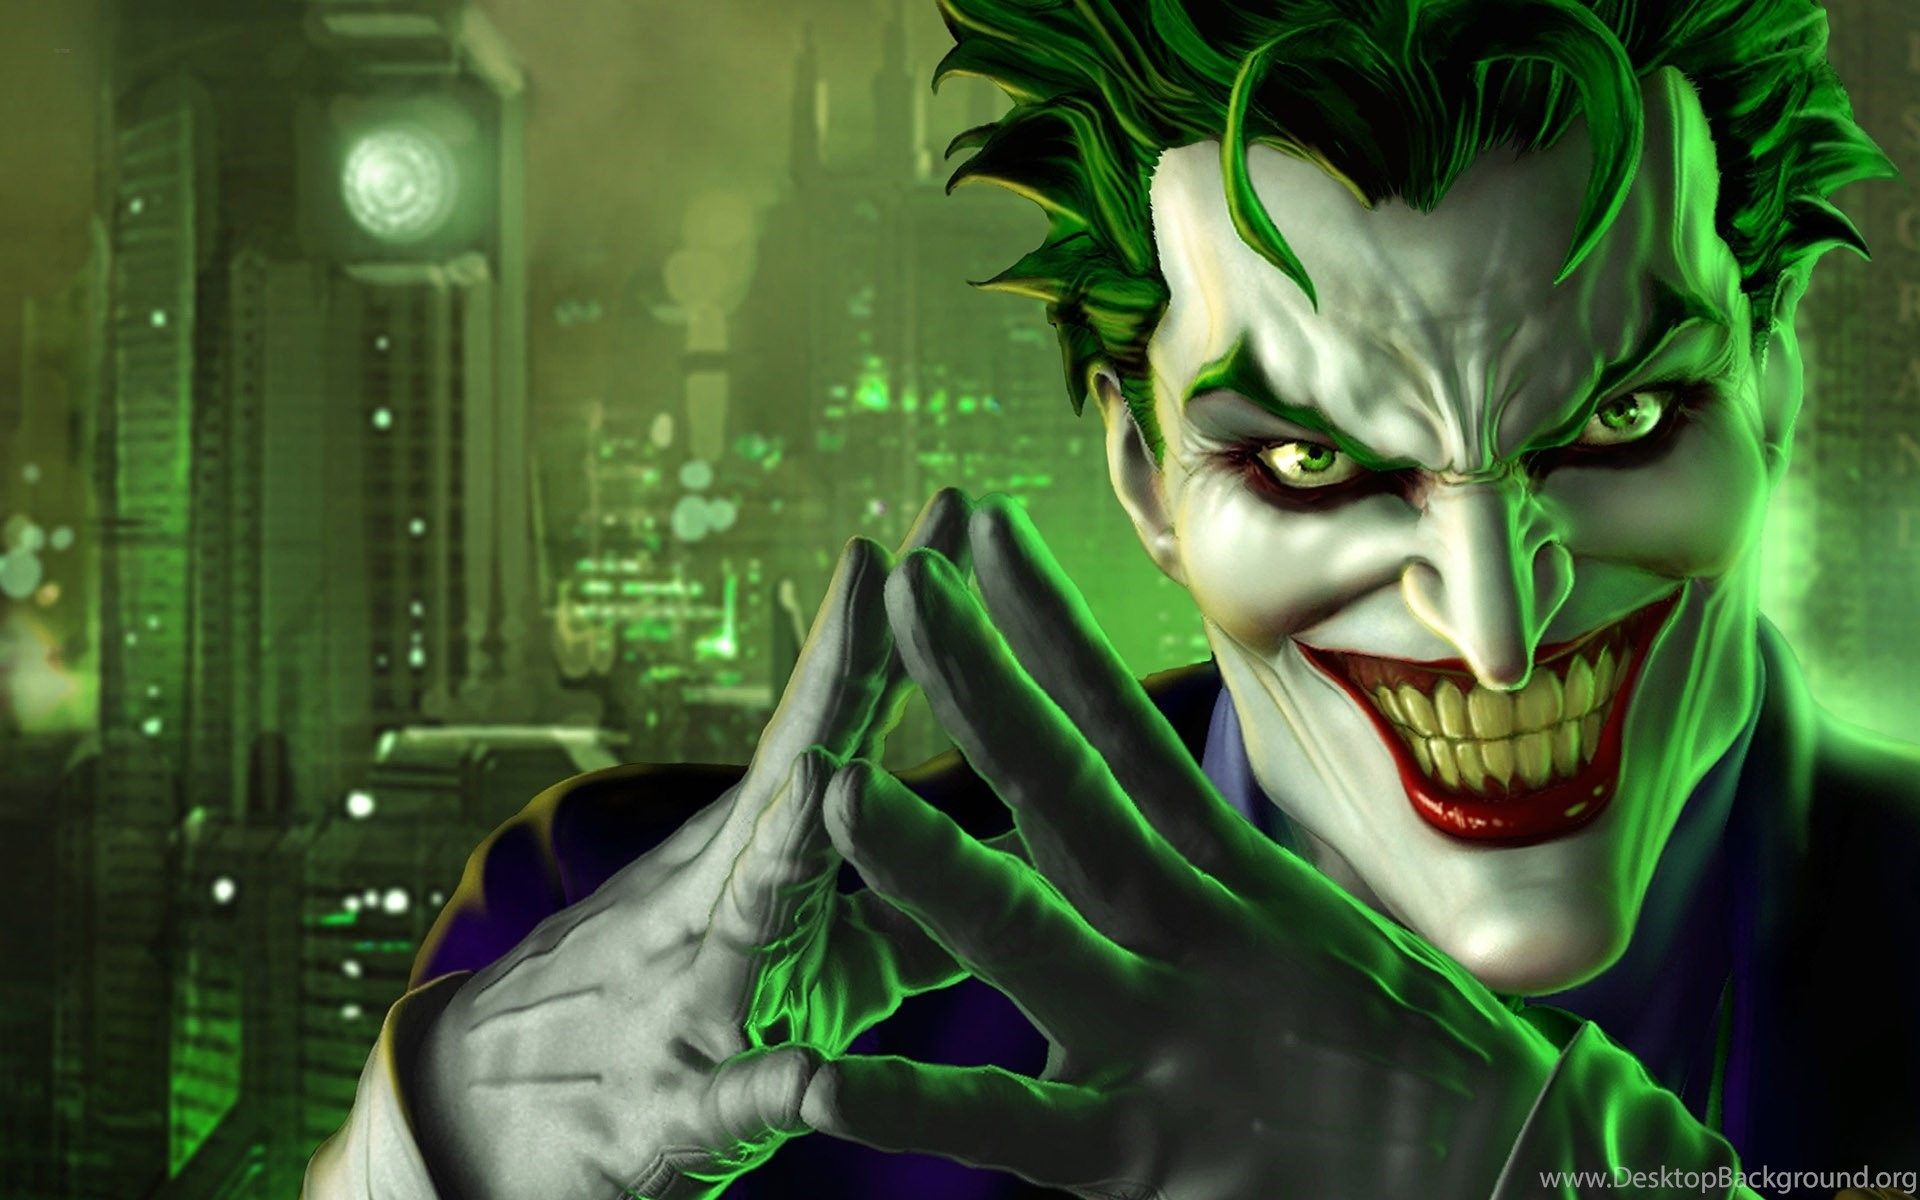 35 batman and joker wallpapers for desktop desktop background